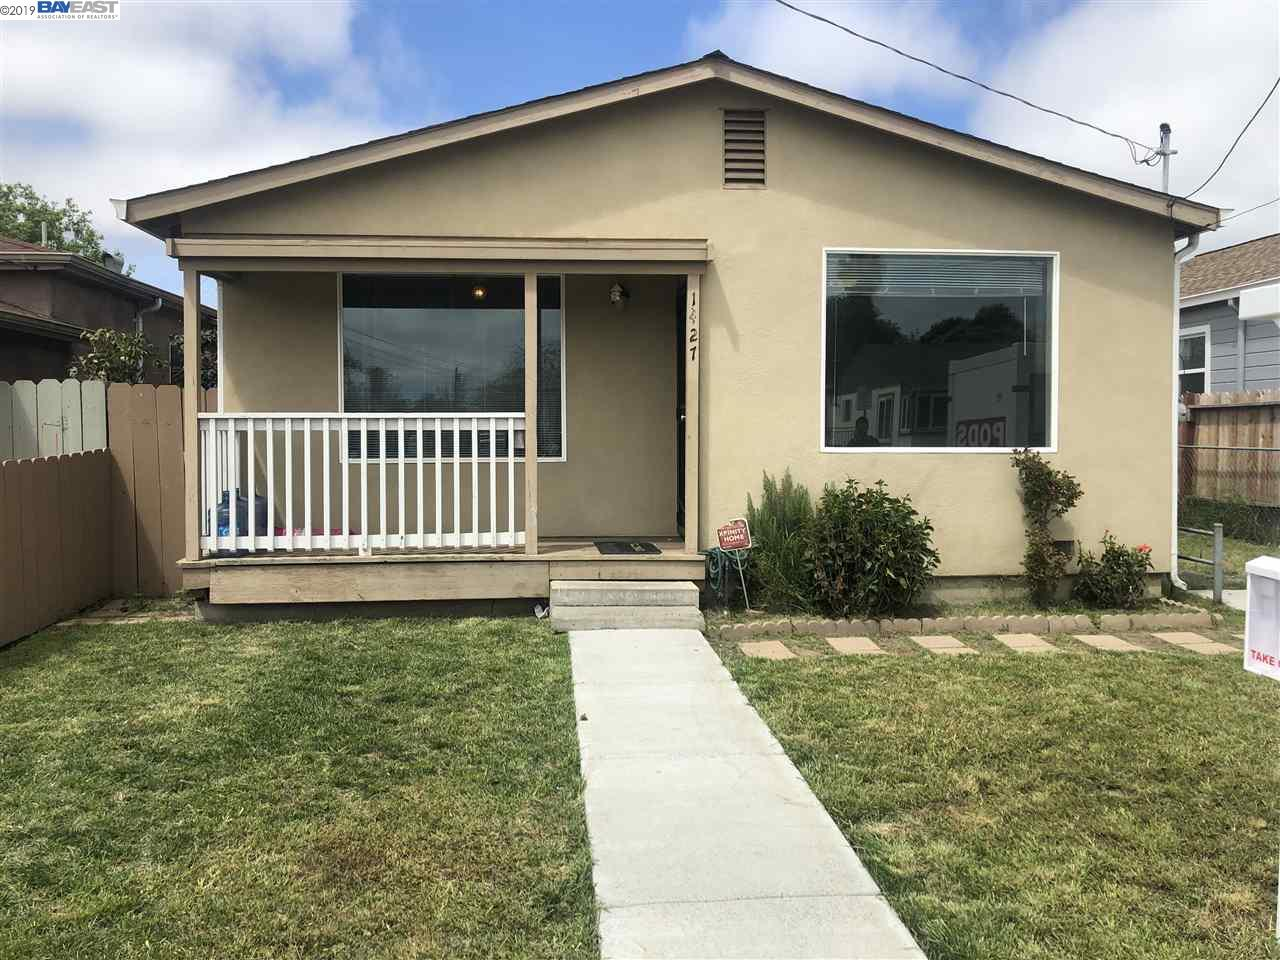 Round Table San Leandro Bayfair.Property Details For 1427 153rd Ave San Leandro Ca 94578 Doug